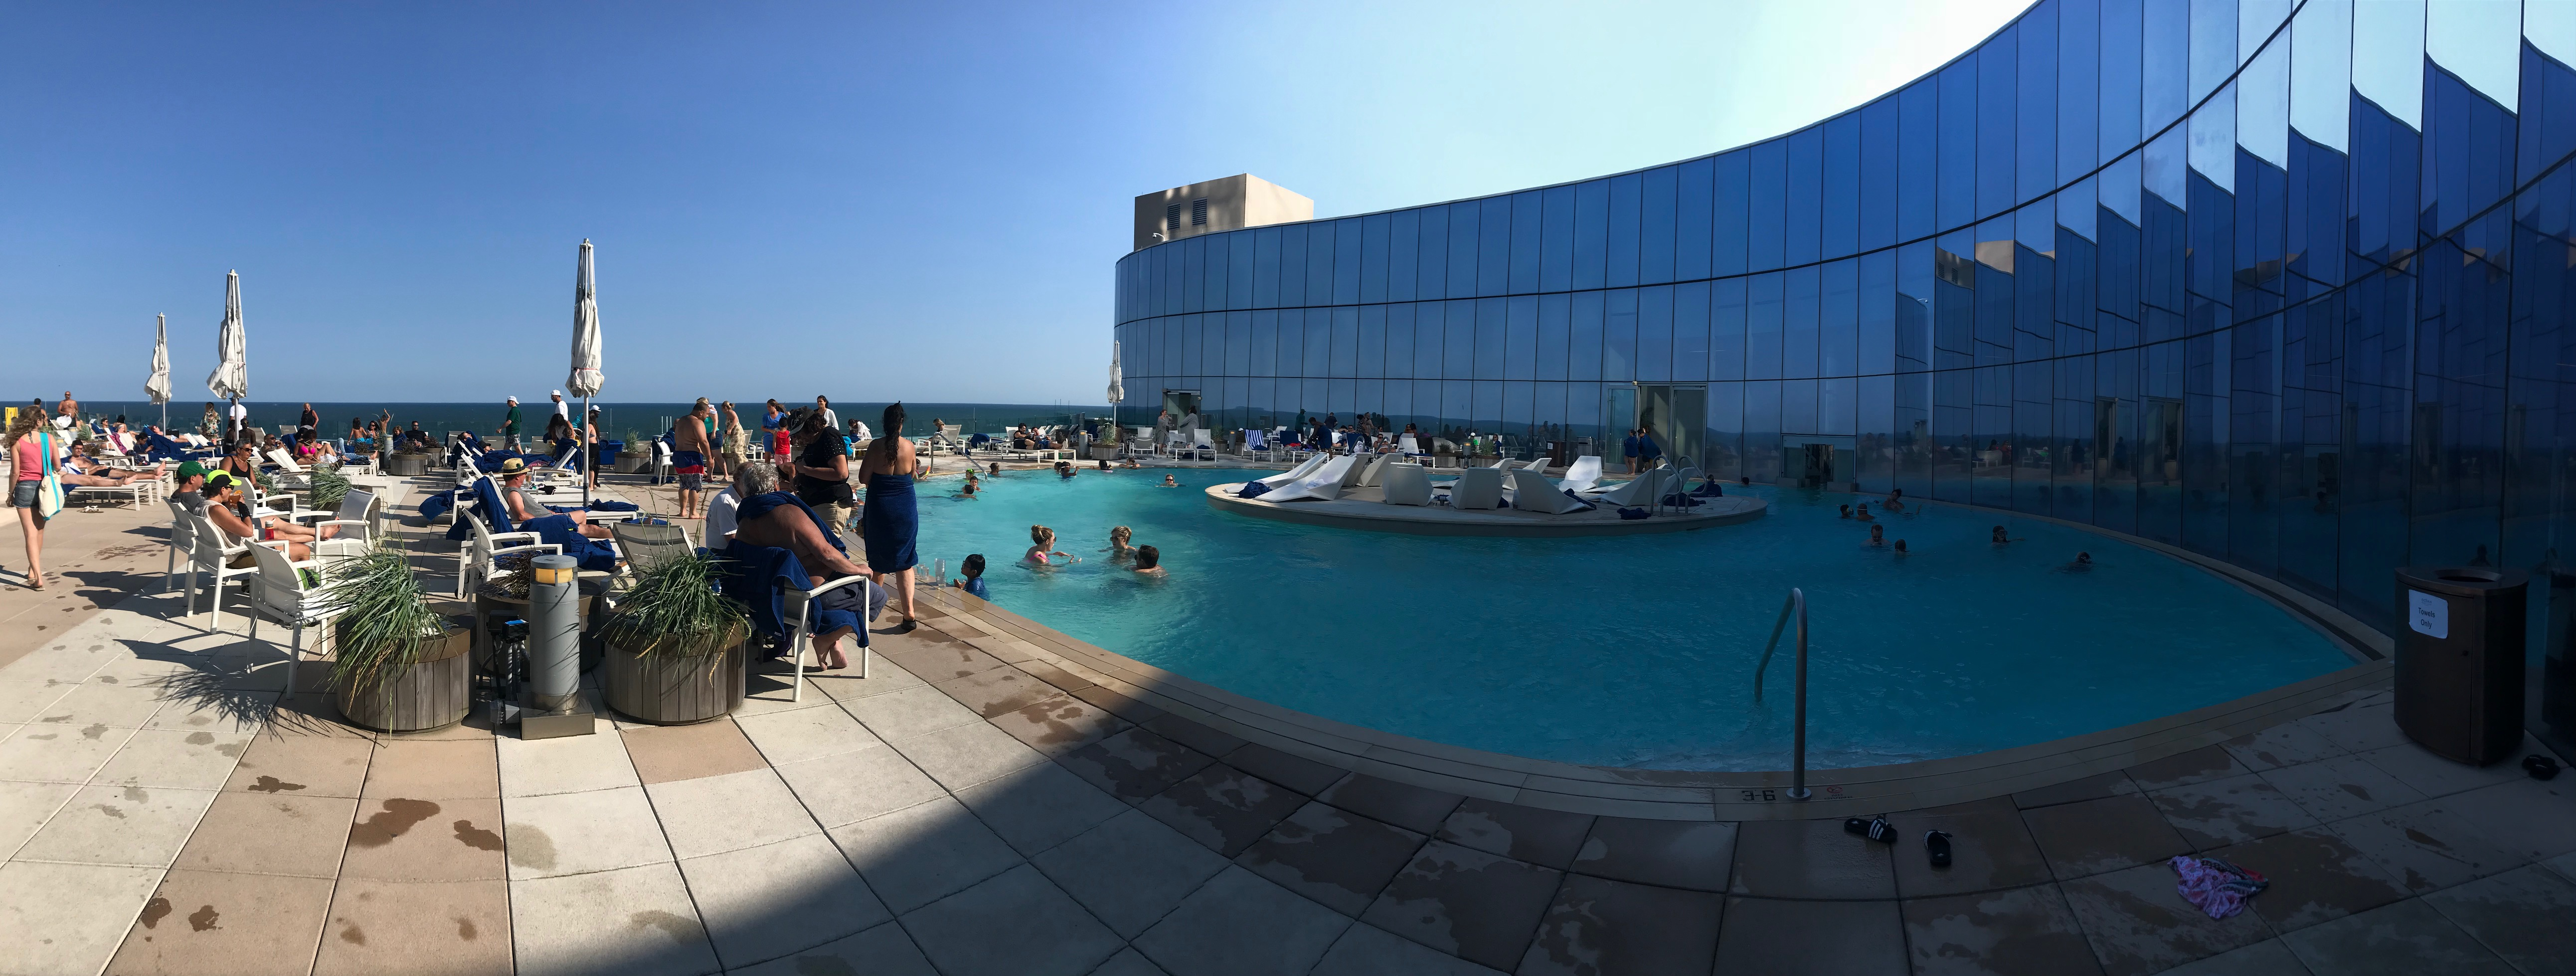 Panoramic picture of Pool at Ocean AC